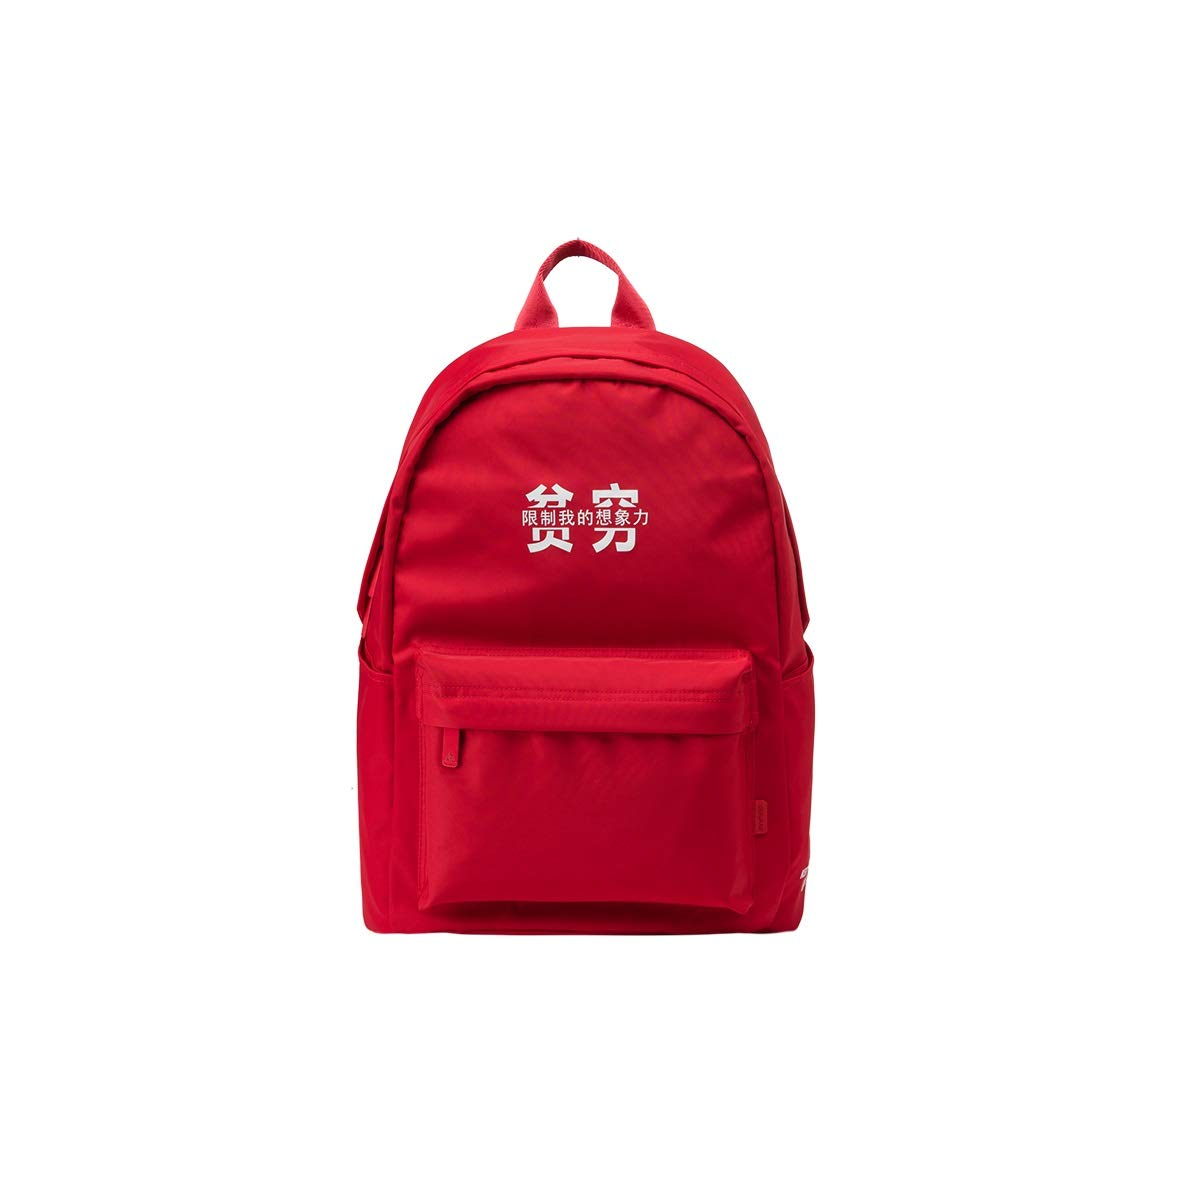 TONGBOSHI Backpack Female, Backpack Travel Bag Casual Middle School Bag, Fashion Trend Backpack (Color : Red)